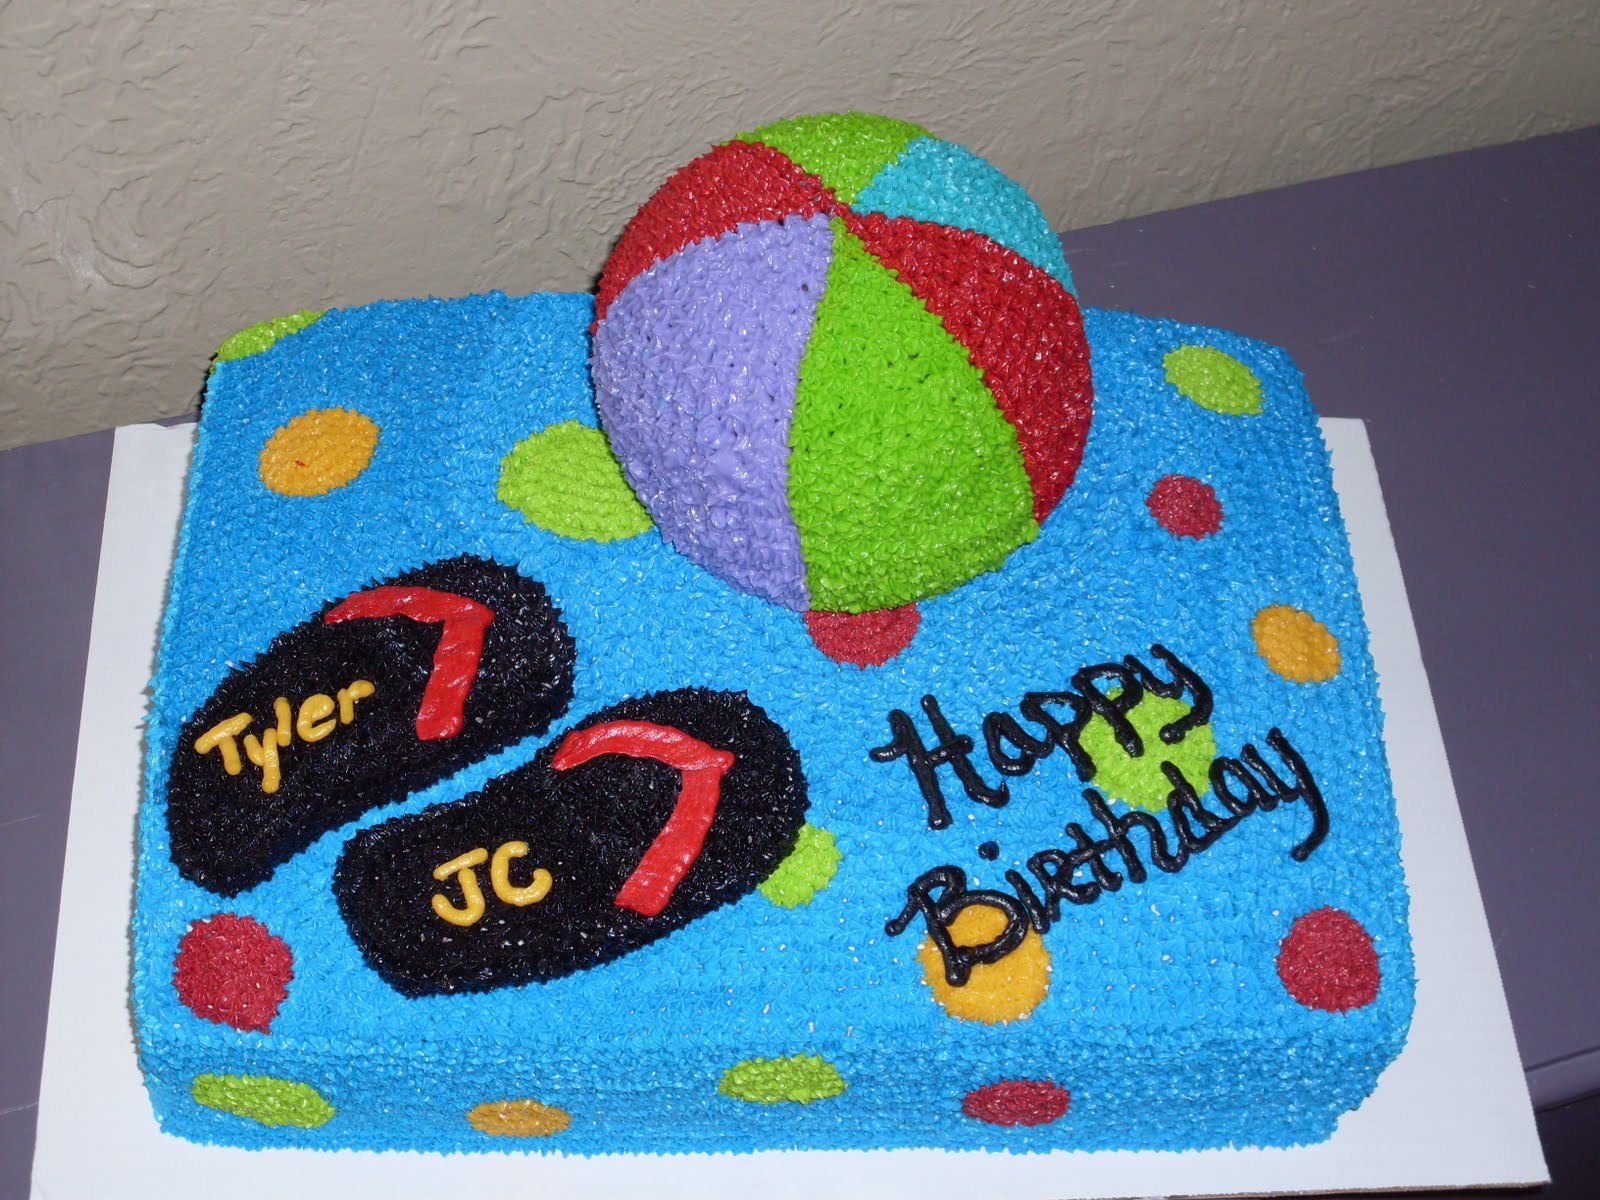 Kaci s Cake Delight: Happy Birthday, Tyler & JC!